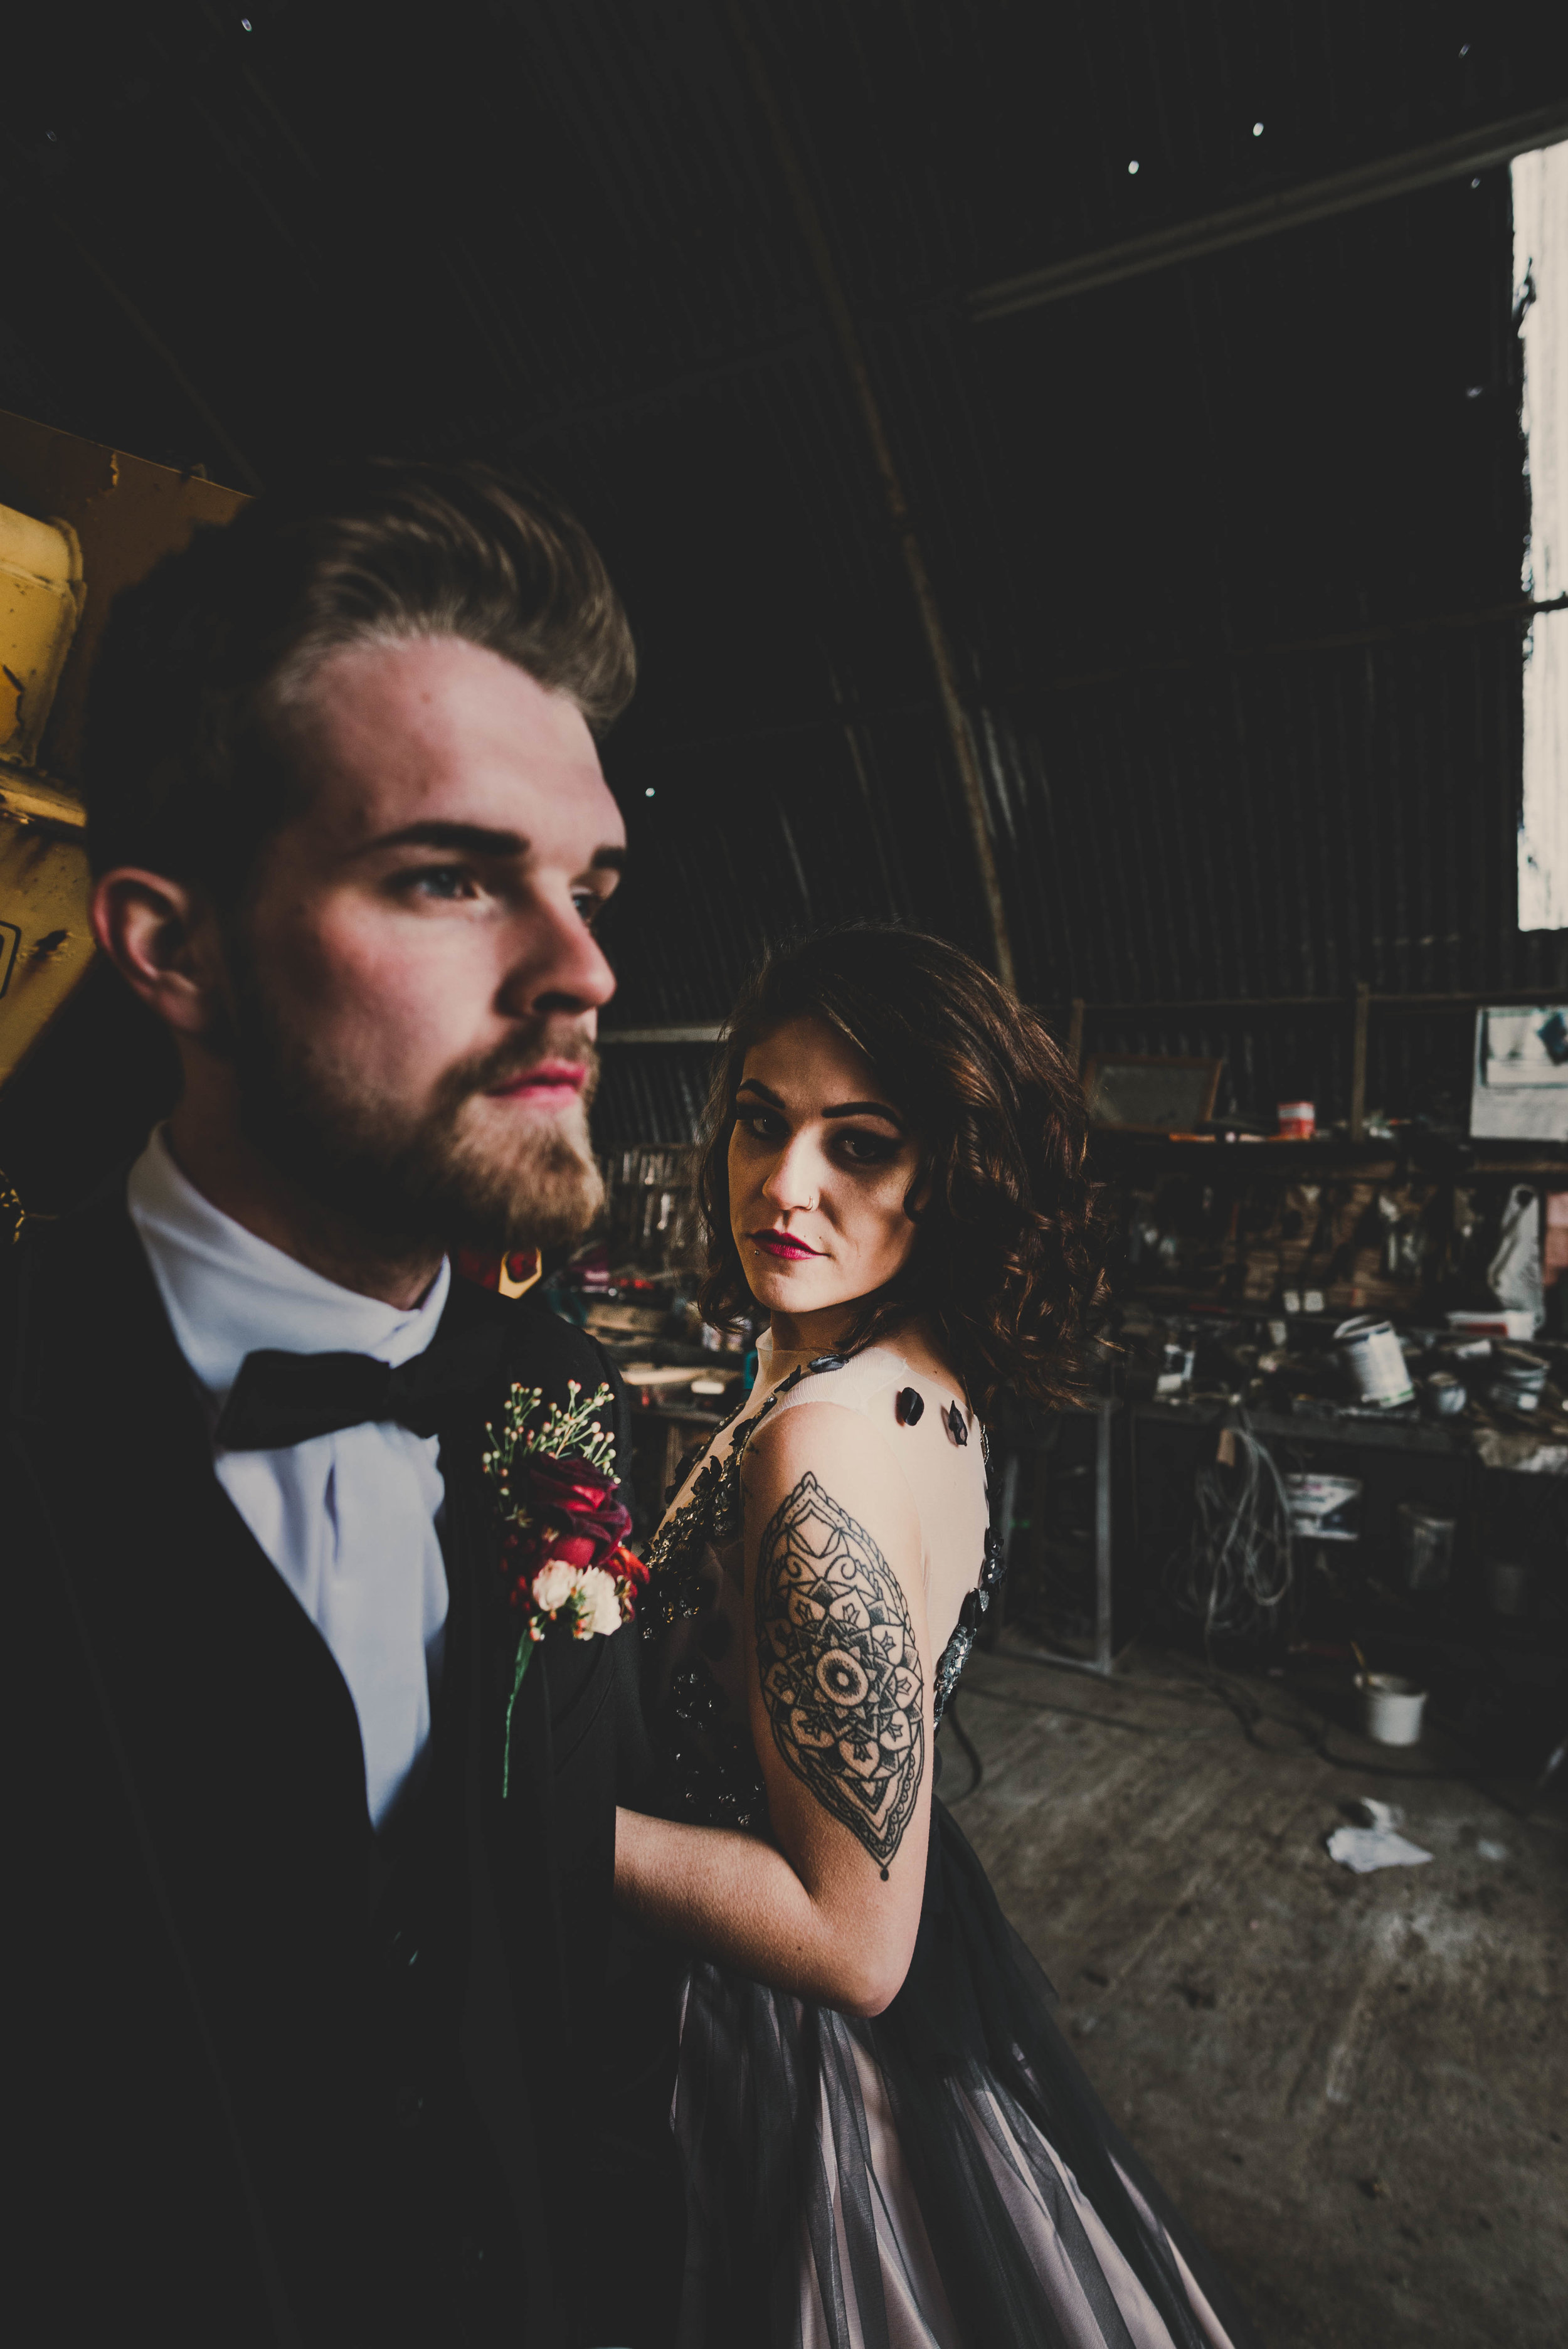 edgy-wedding-photography-in-lake-district (21).jpg